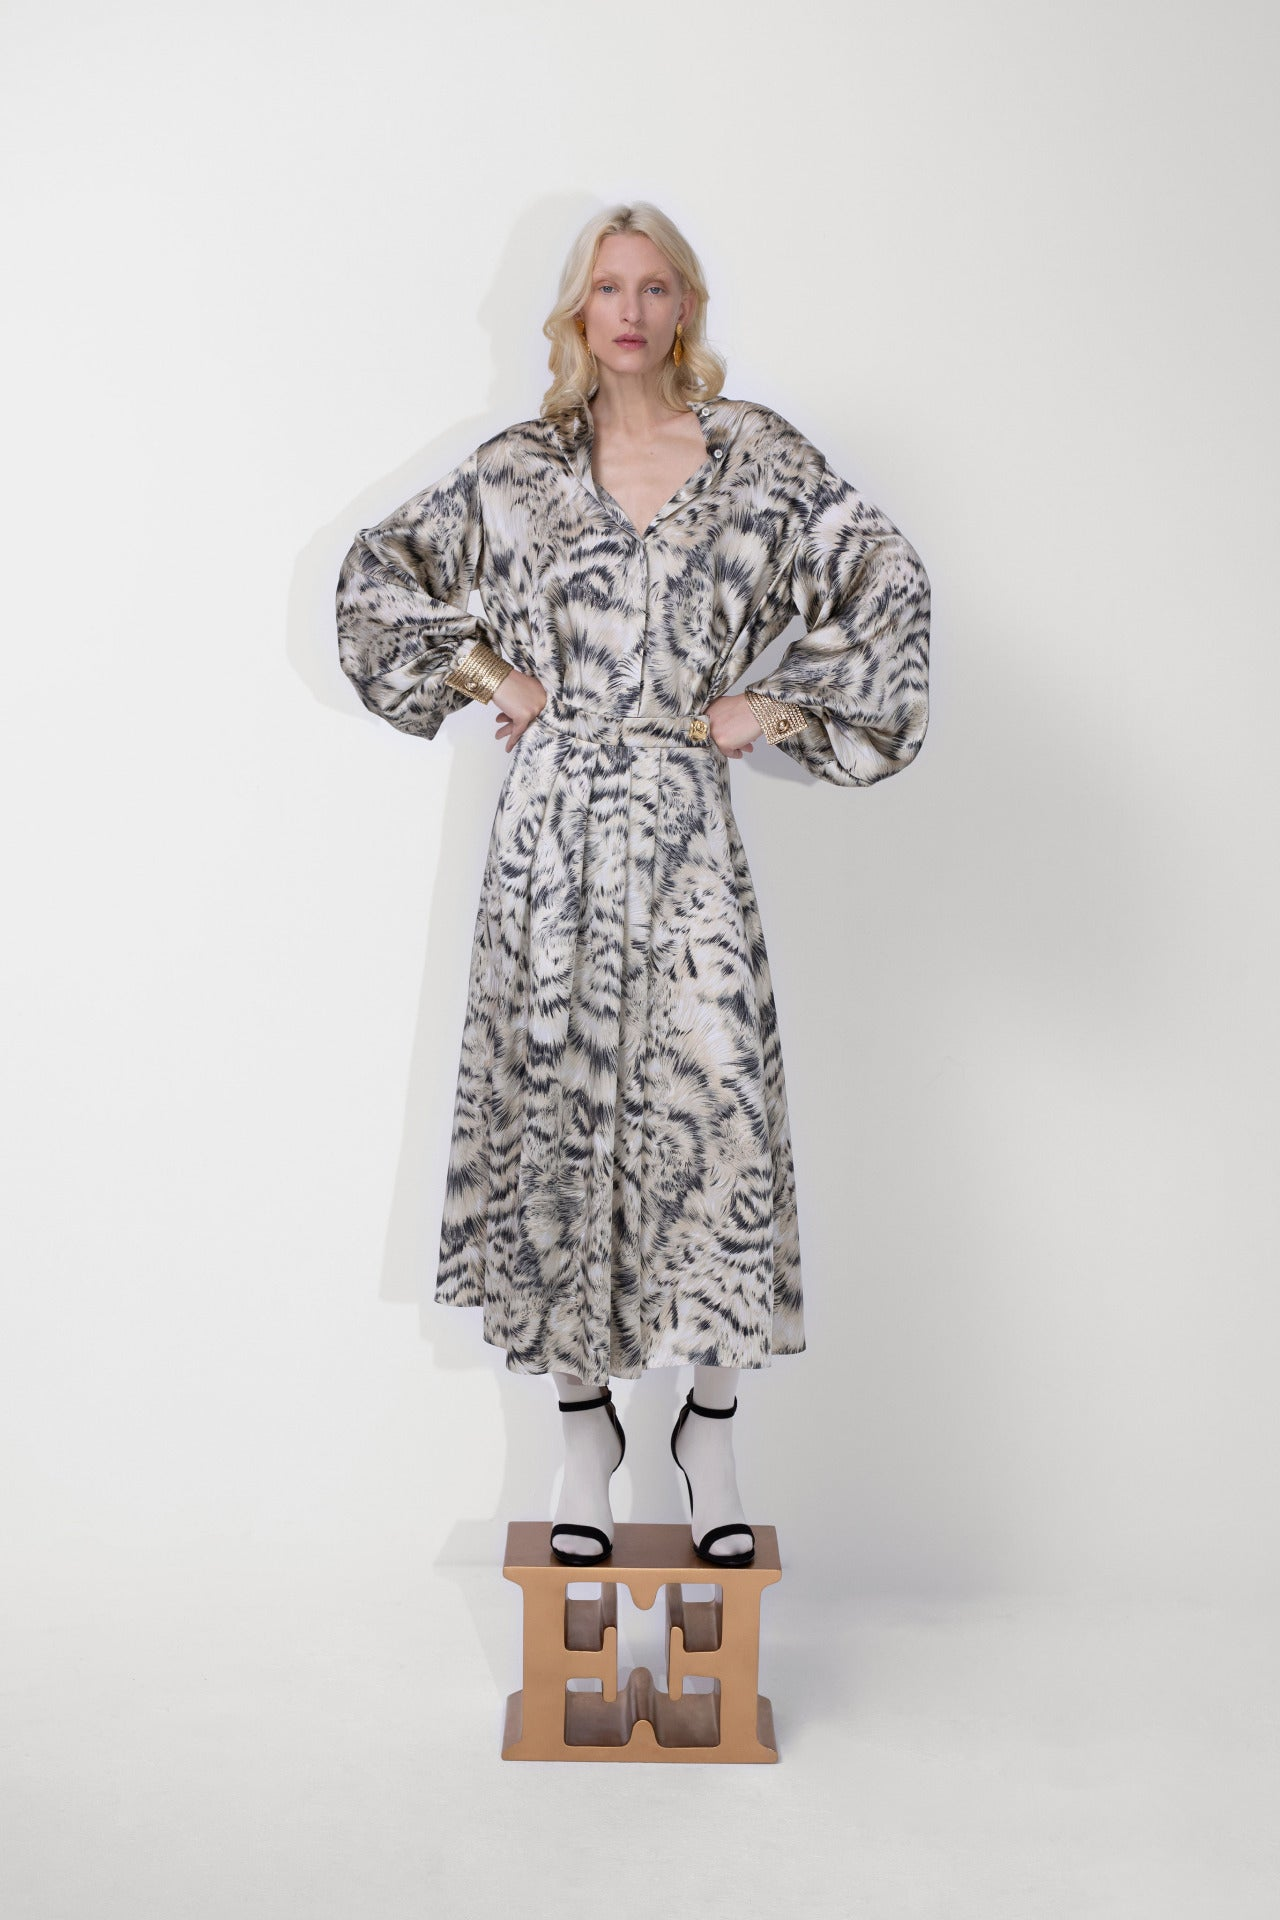 ESCADA Fall/Winter 2020 Fur print dress